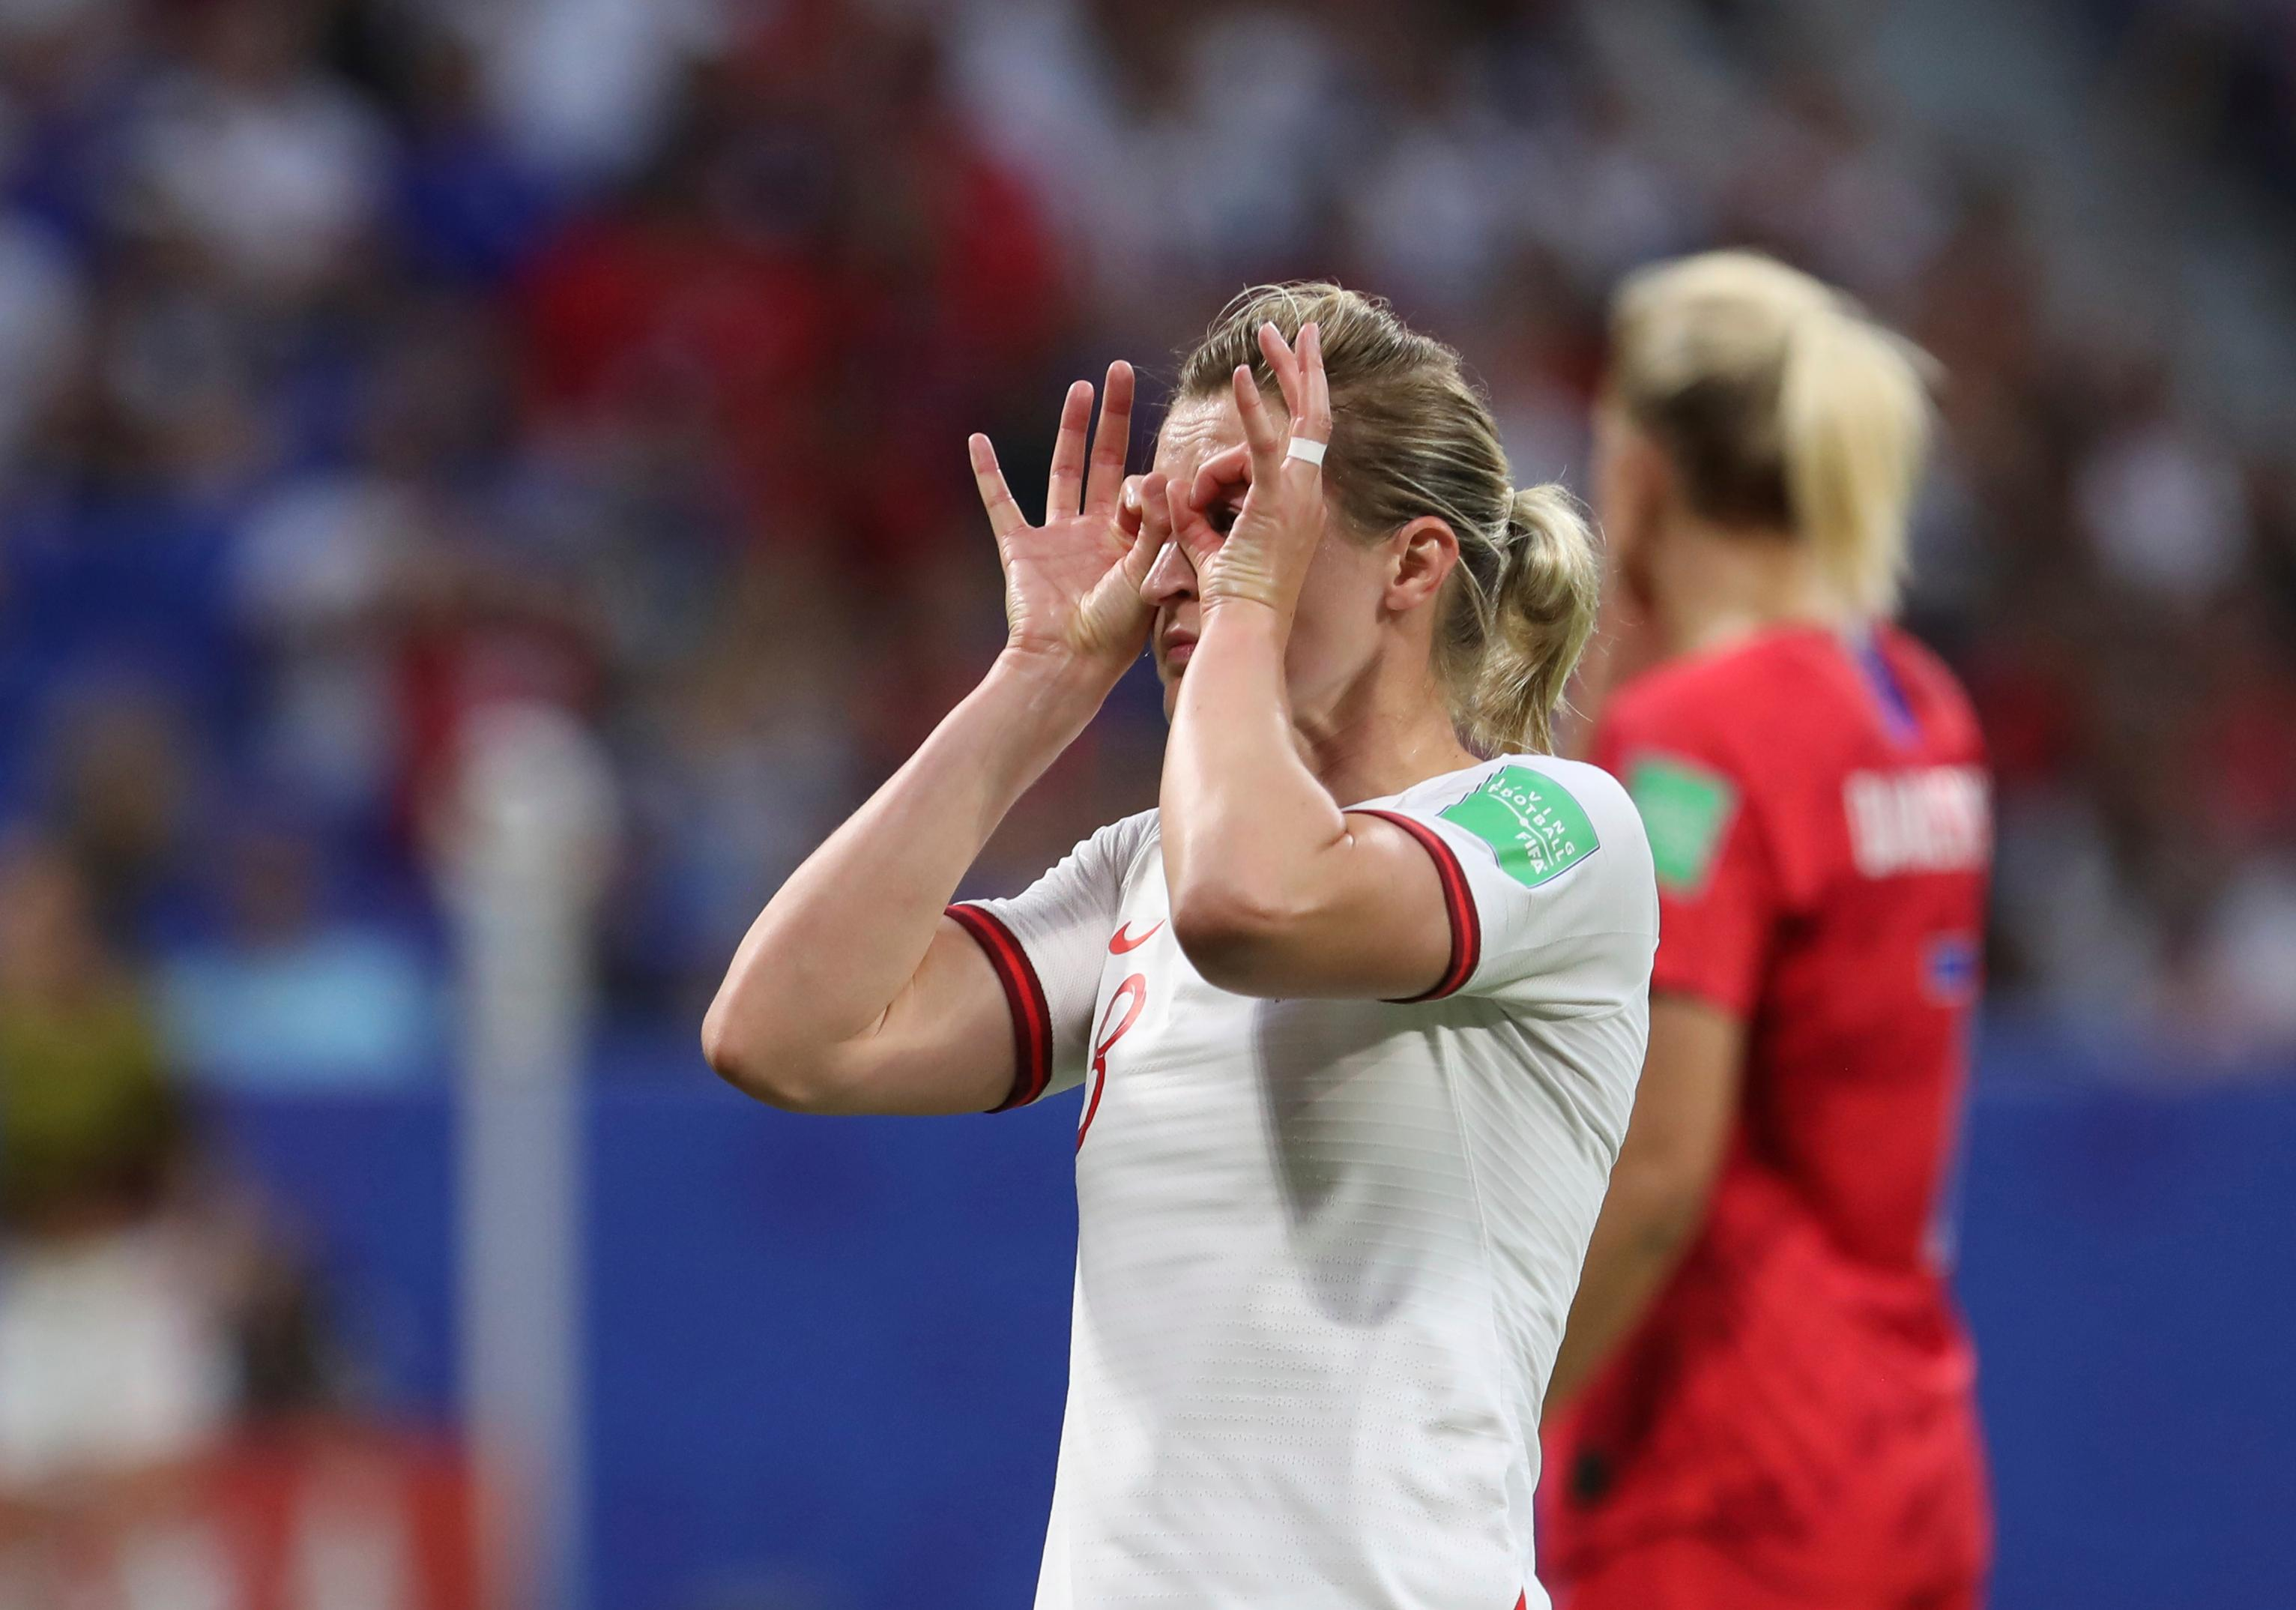 England's Ellen White celebrates after scoring the opening goal during the Women's World Cup semifinal soccer match between England and the United States, at the Stade de Lyon outside Lyon, France, Tuesday, July 2, 2019. (AP Photo/Laurent Cipriani)